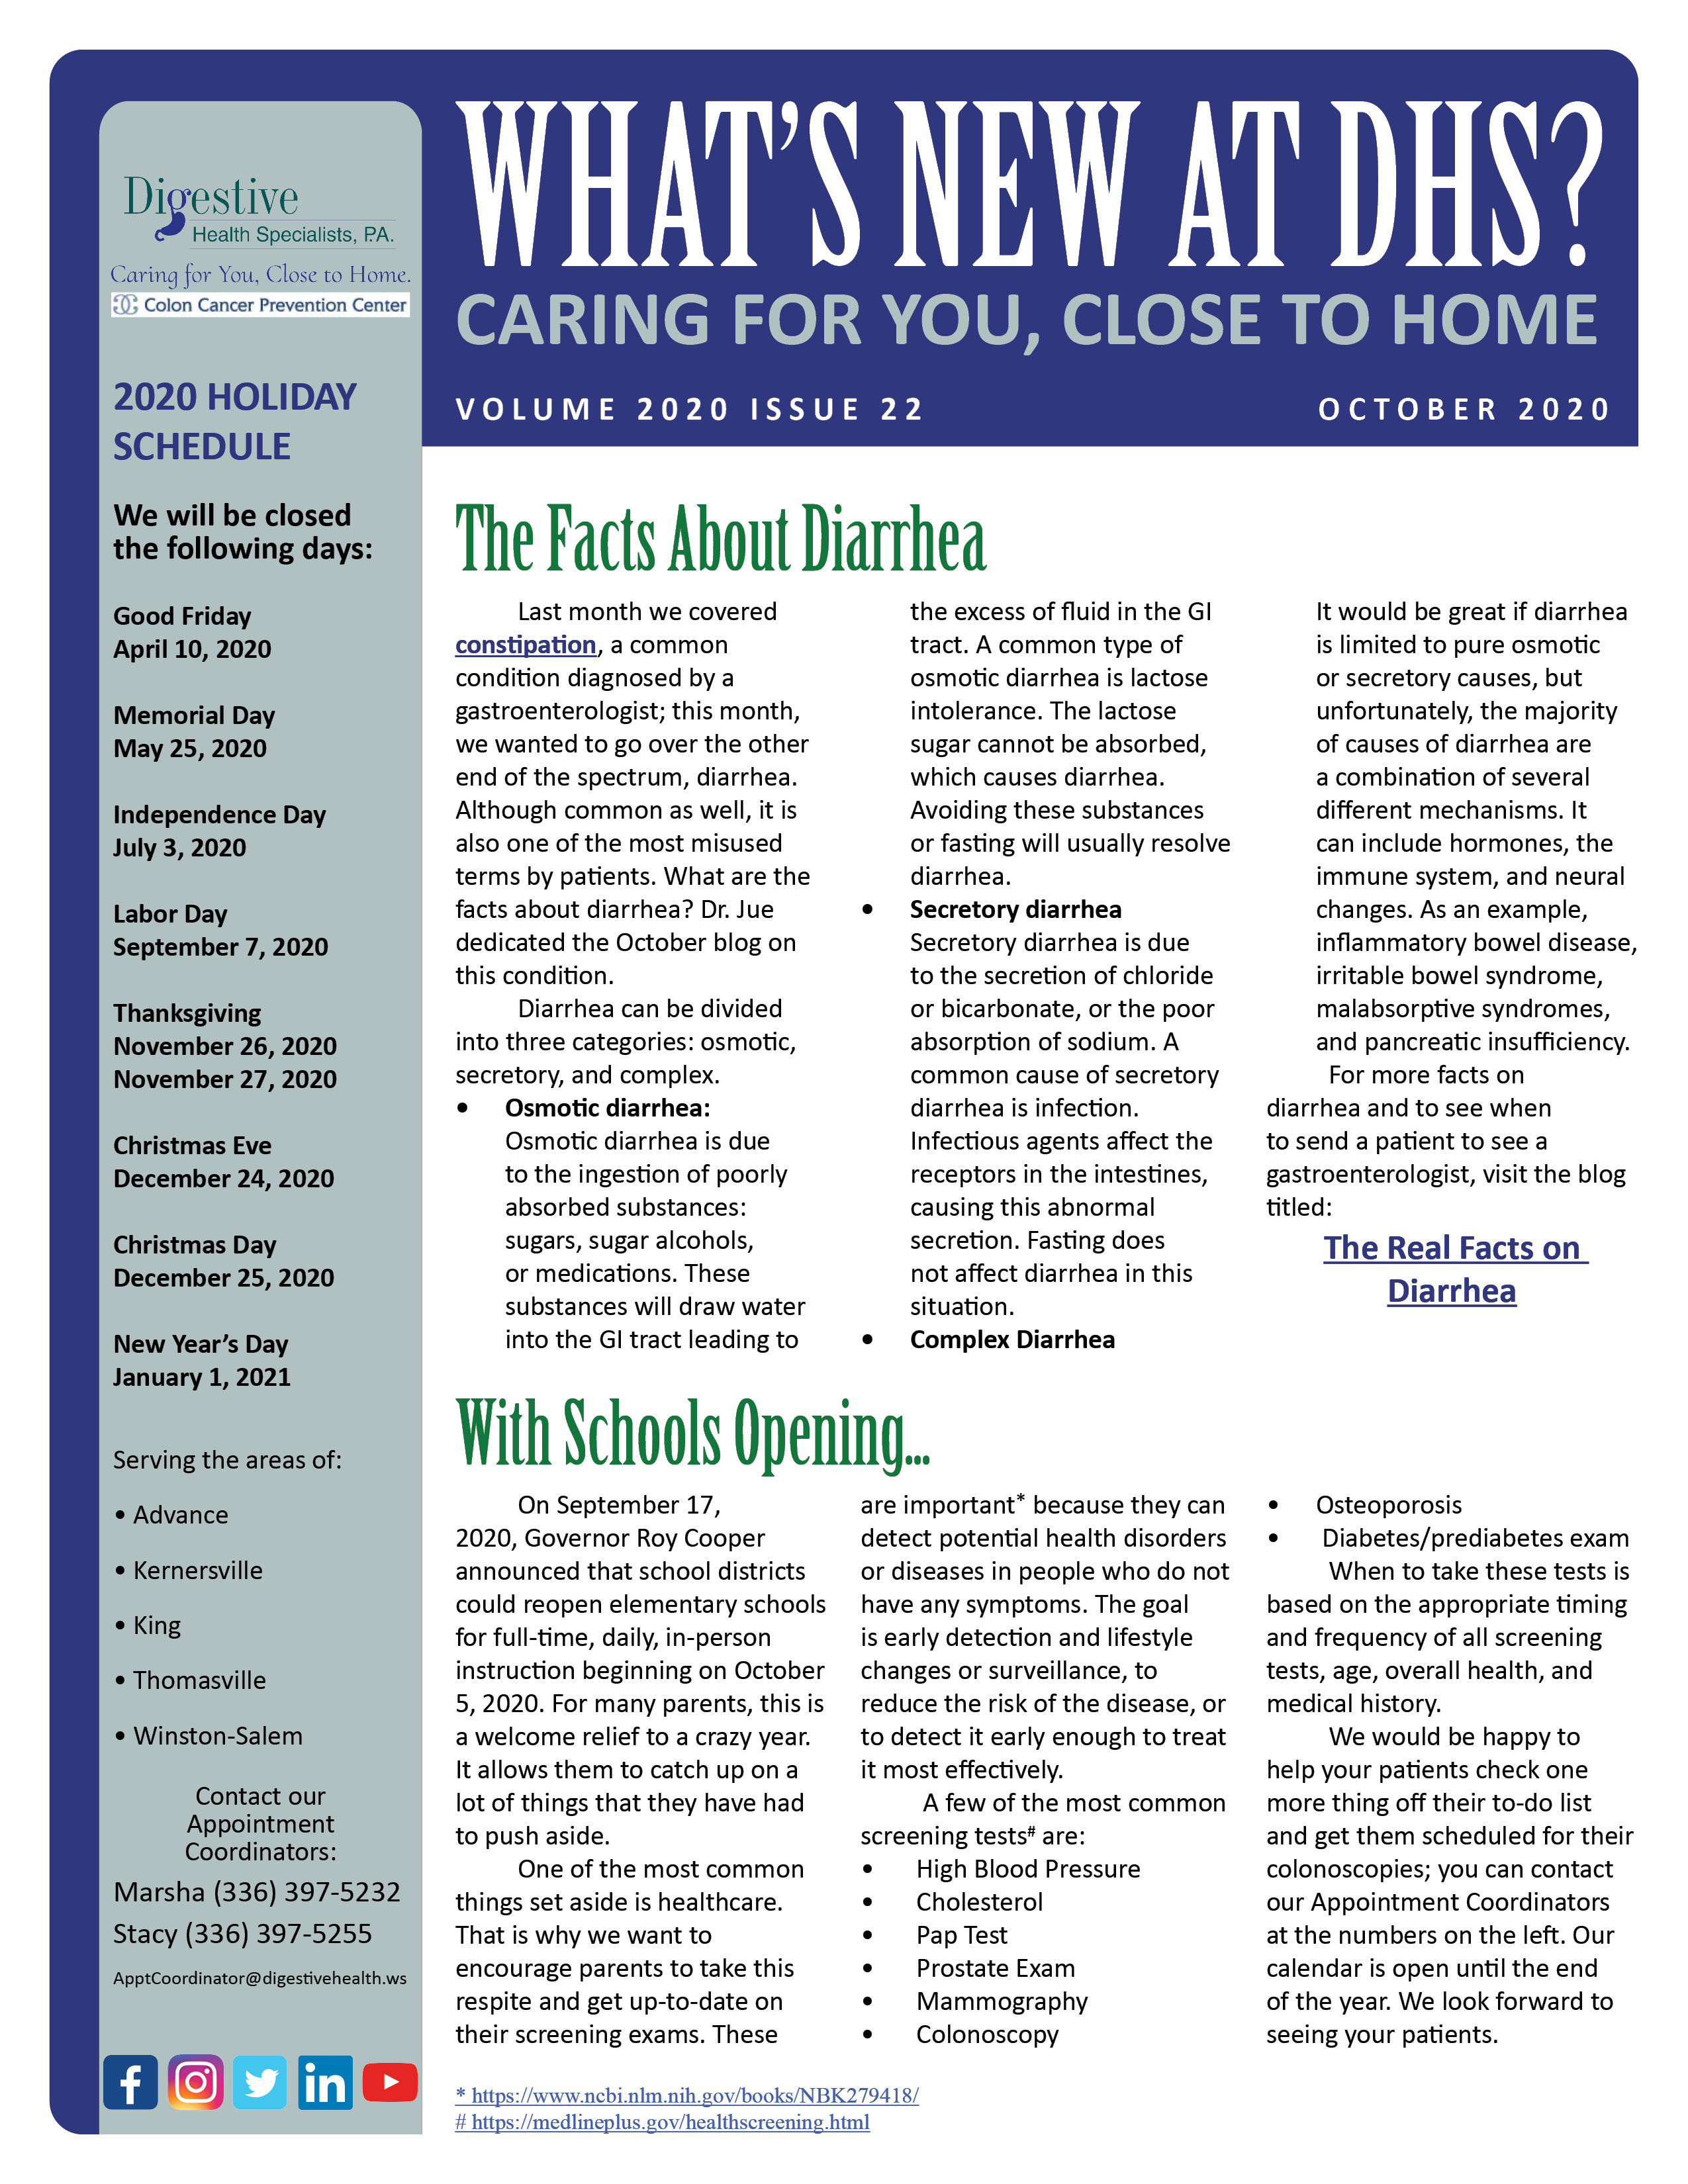 Newsletters Digestive Health Specialists P A